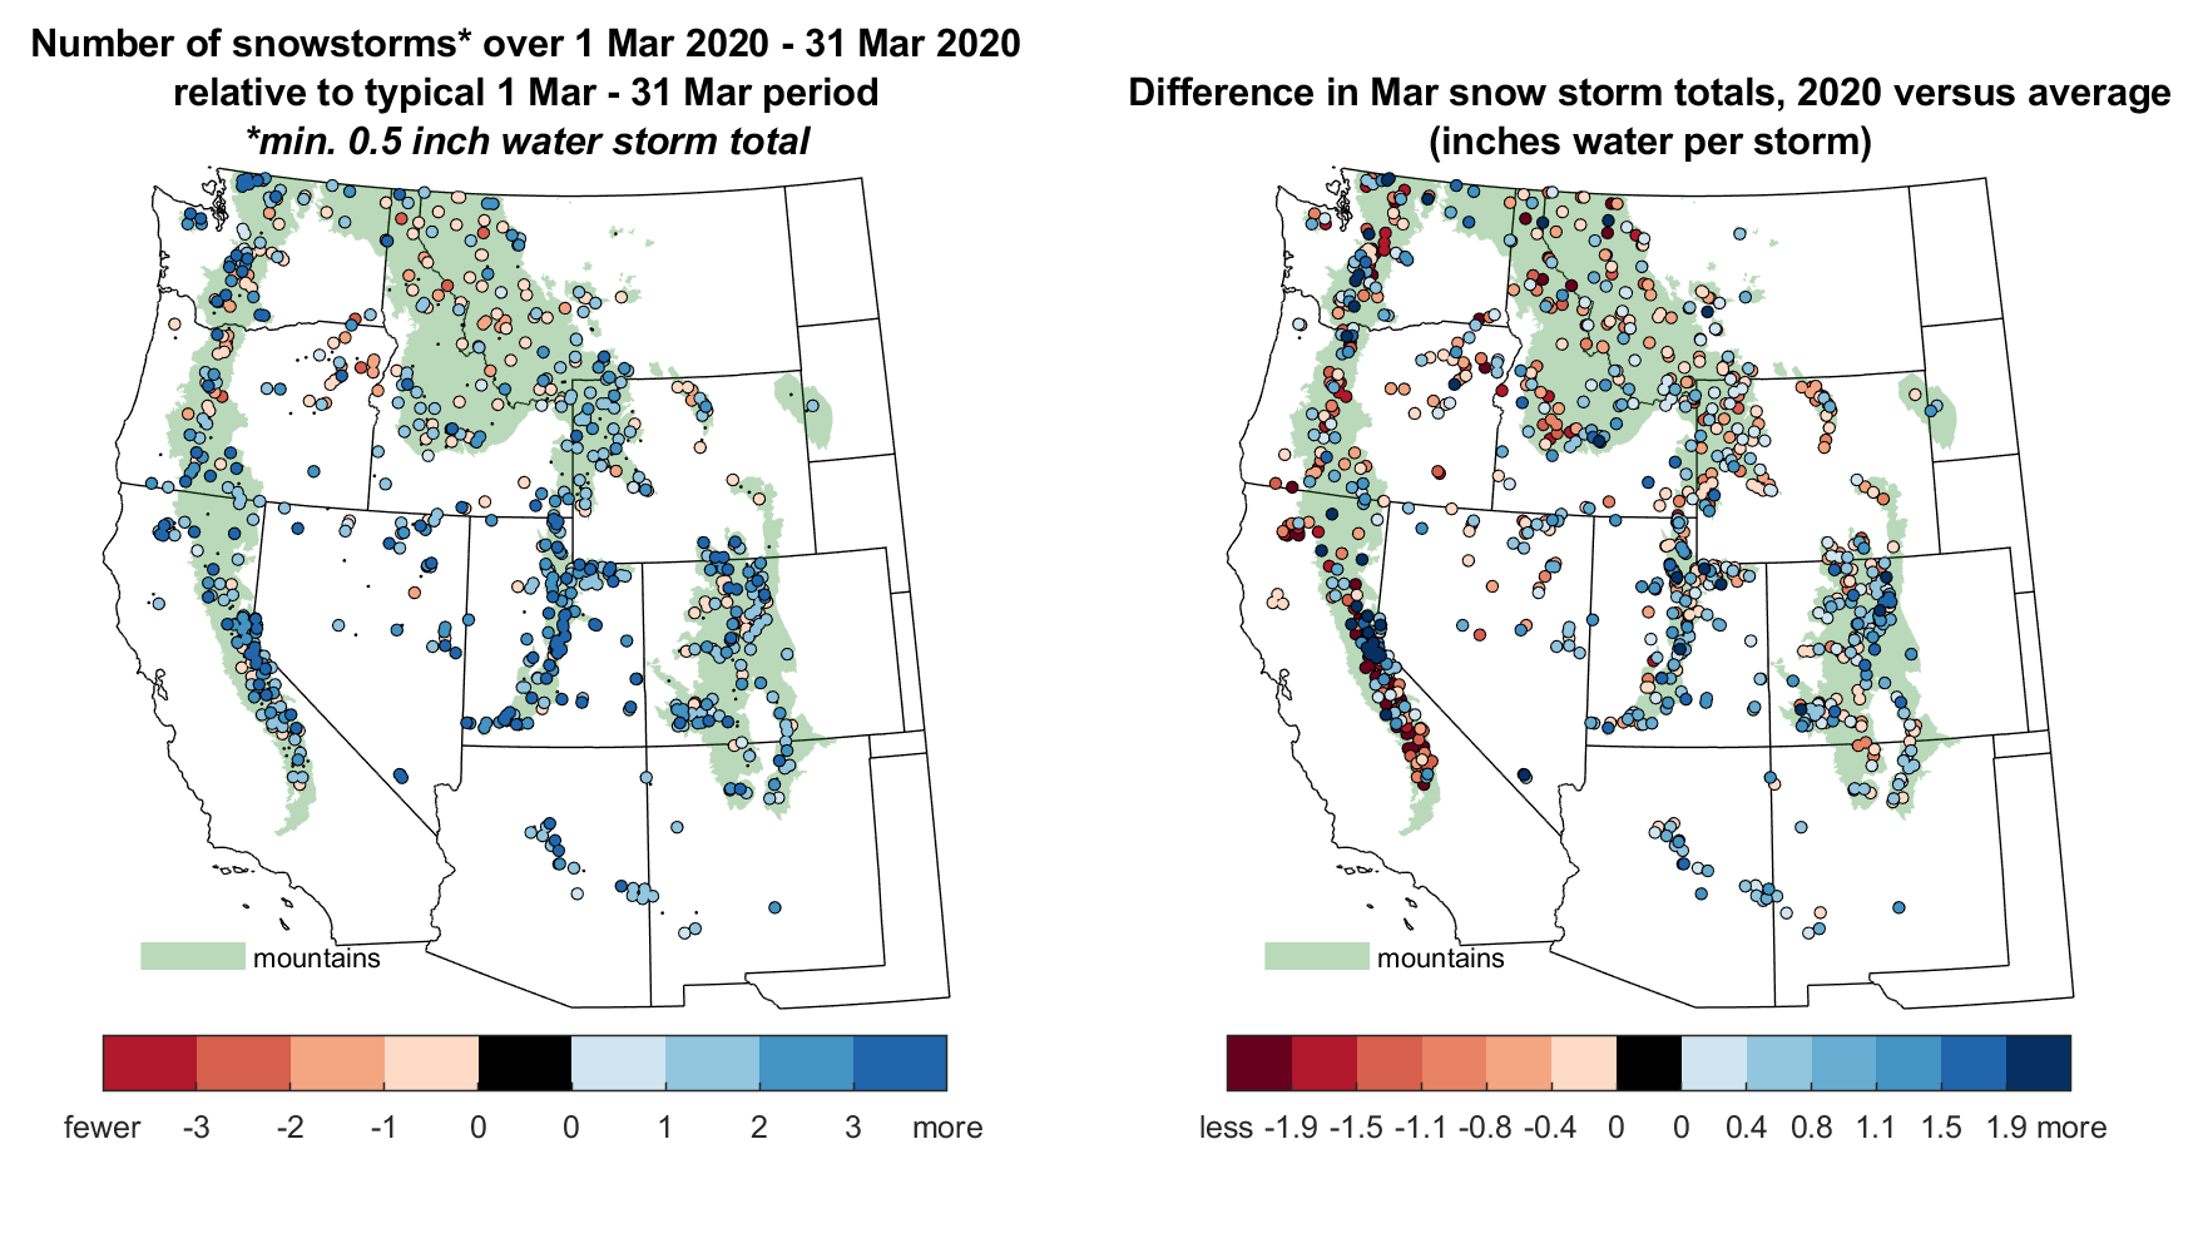 Number of snowstorms with more the 0.5 inches of water equivalent in March 2020